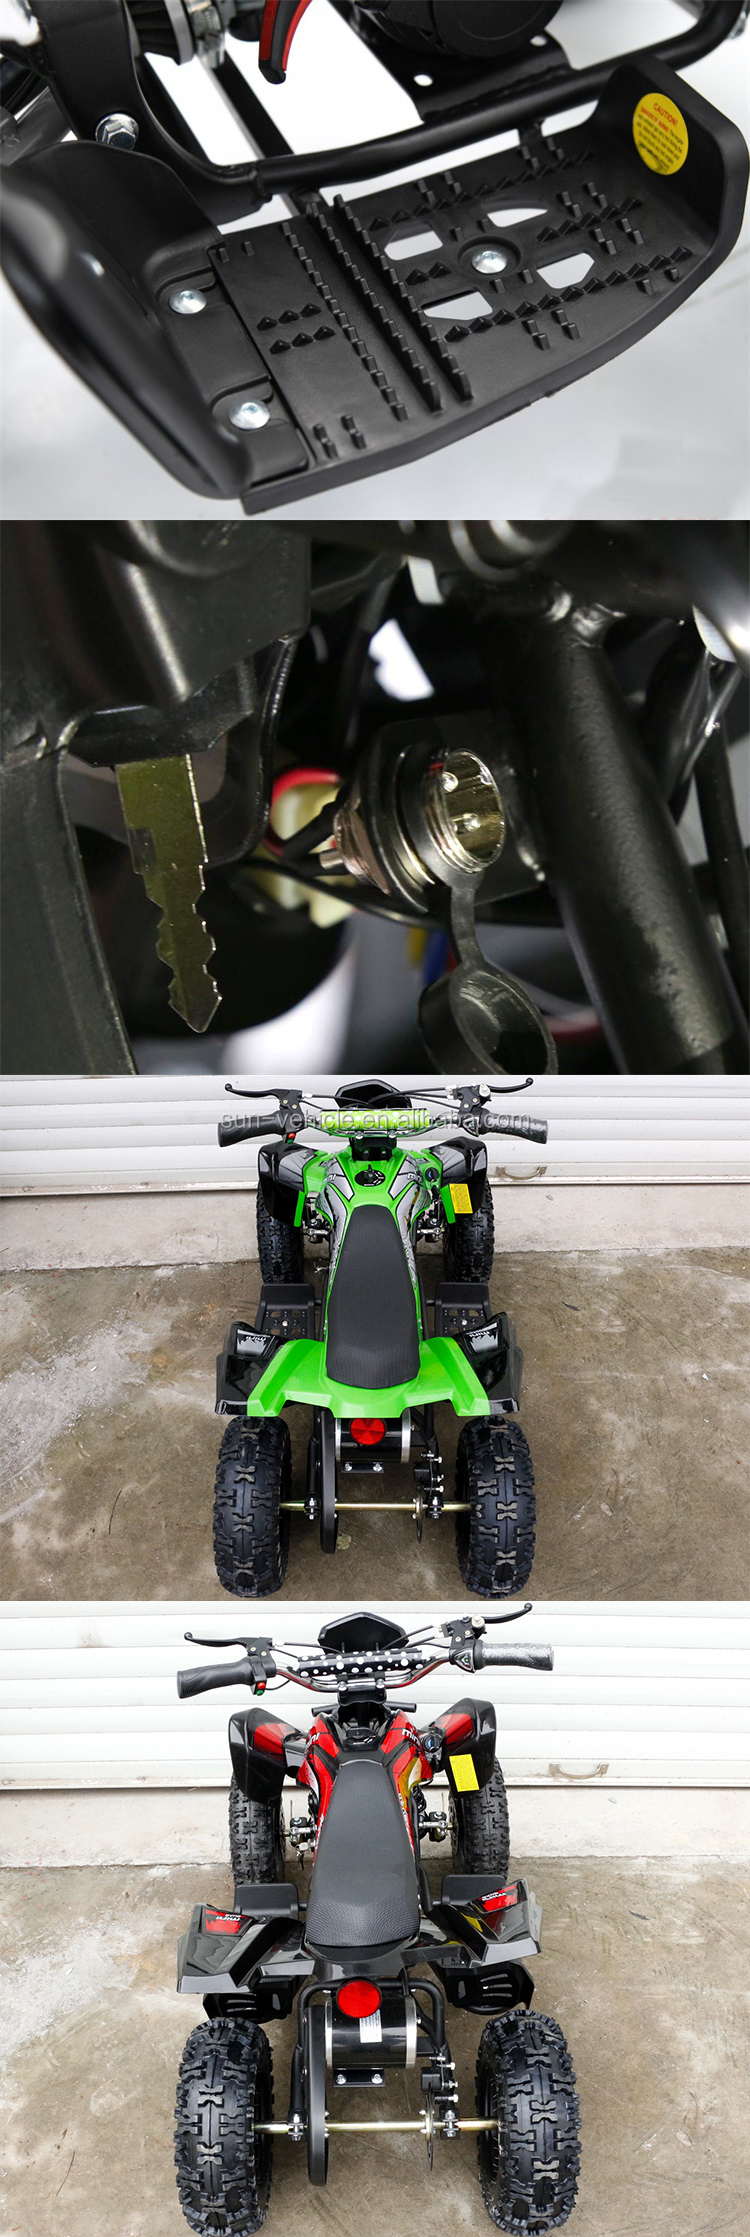 800W 36V mini quad atv for kids with CE approved 4 wheeler ride on bike